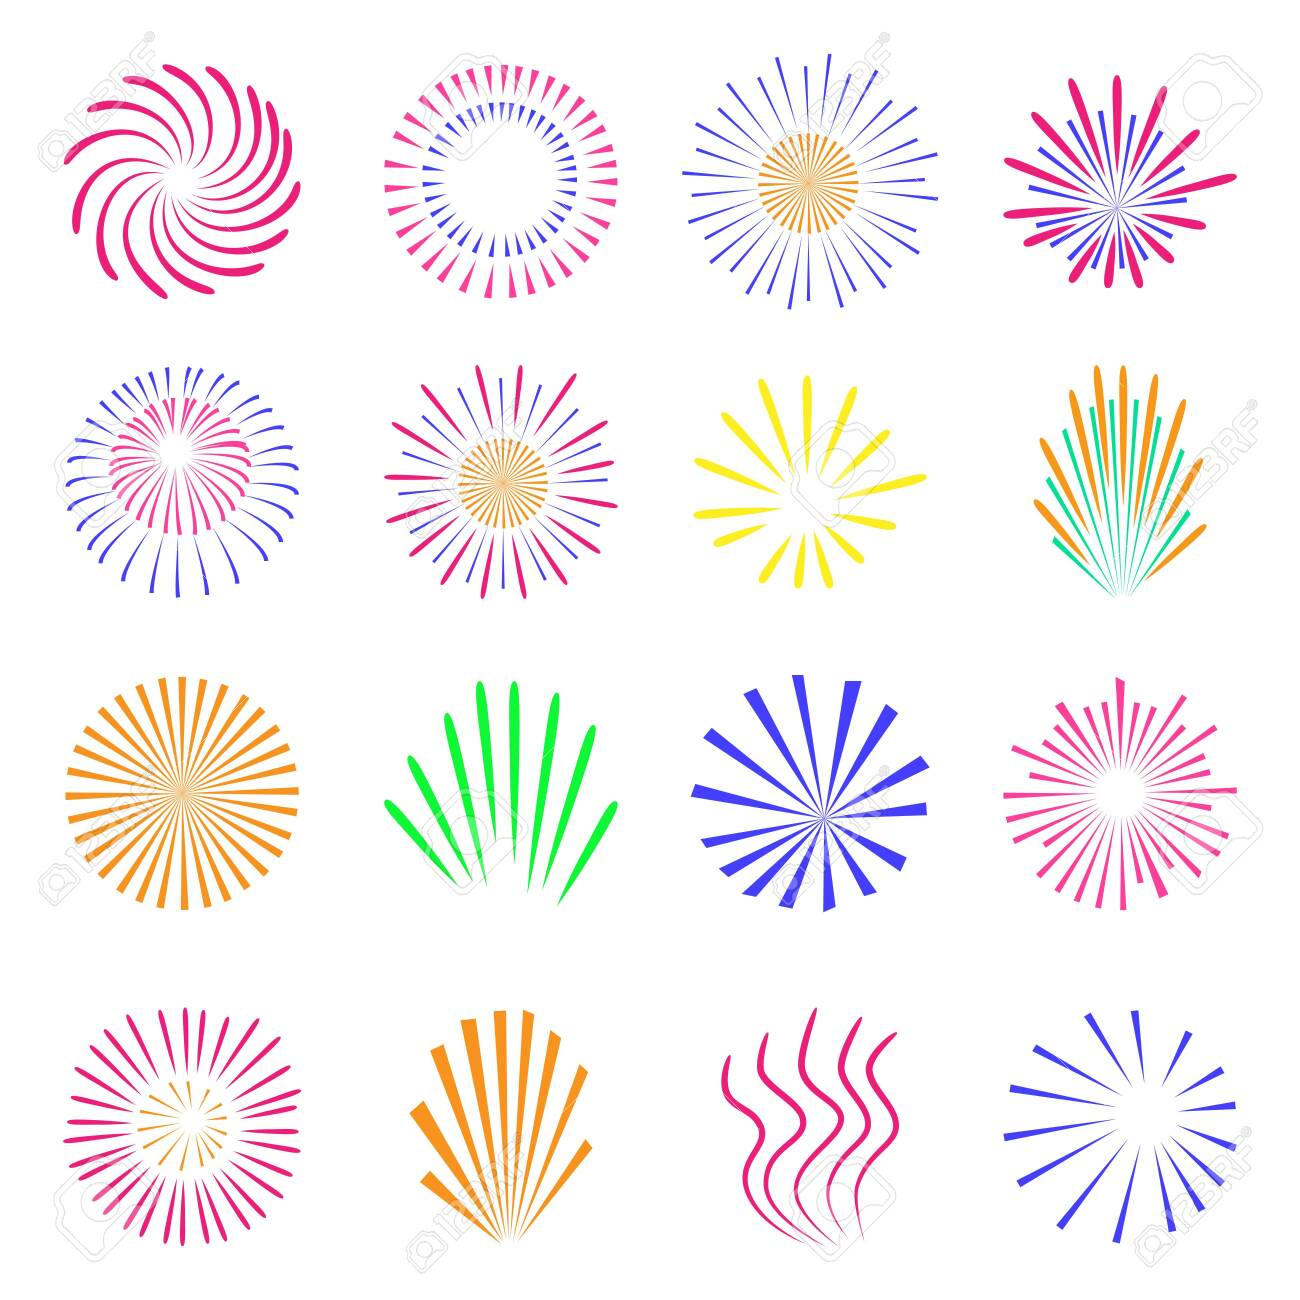 Holiday and party firework icons collection. Vector illustration - 147849494